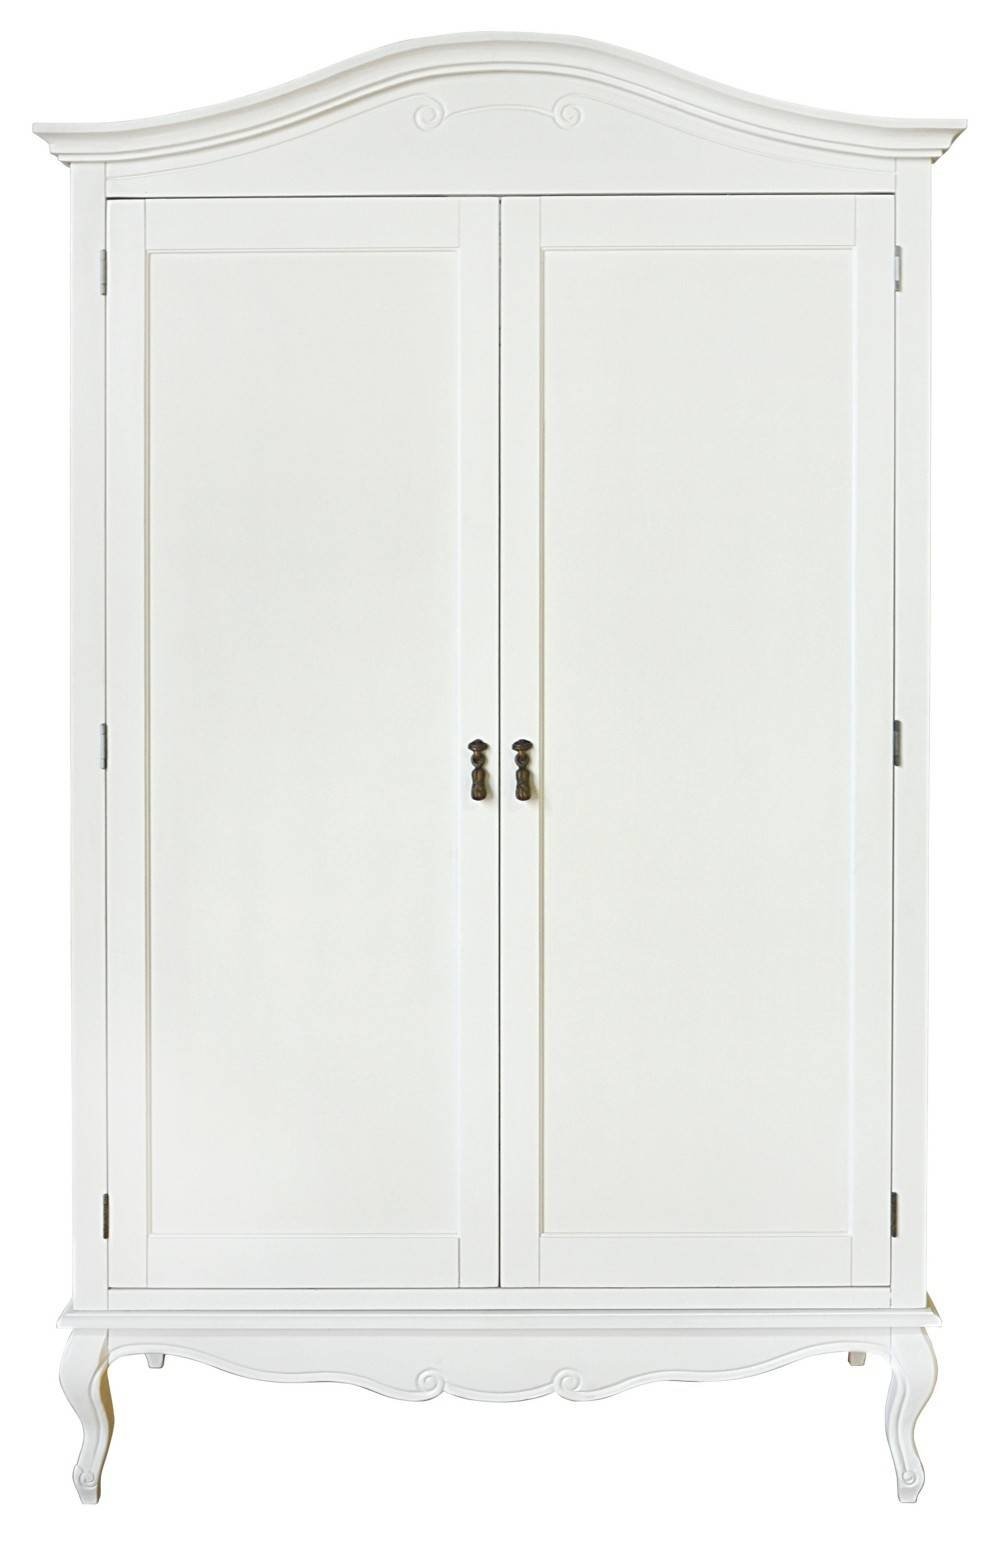 Wardrobes | Bedroom Furniture Direct throughout Double Hanging Rail Wardrobes (Image 26 of 30)